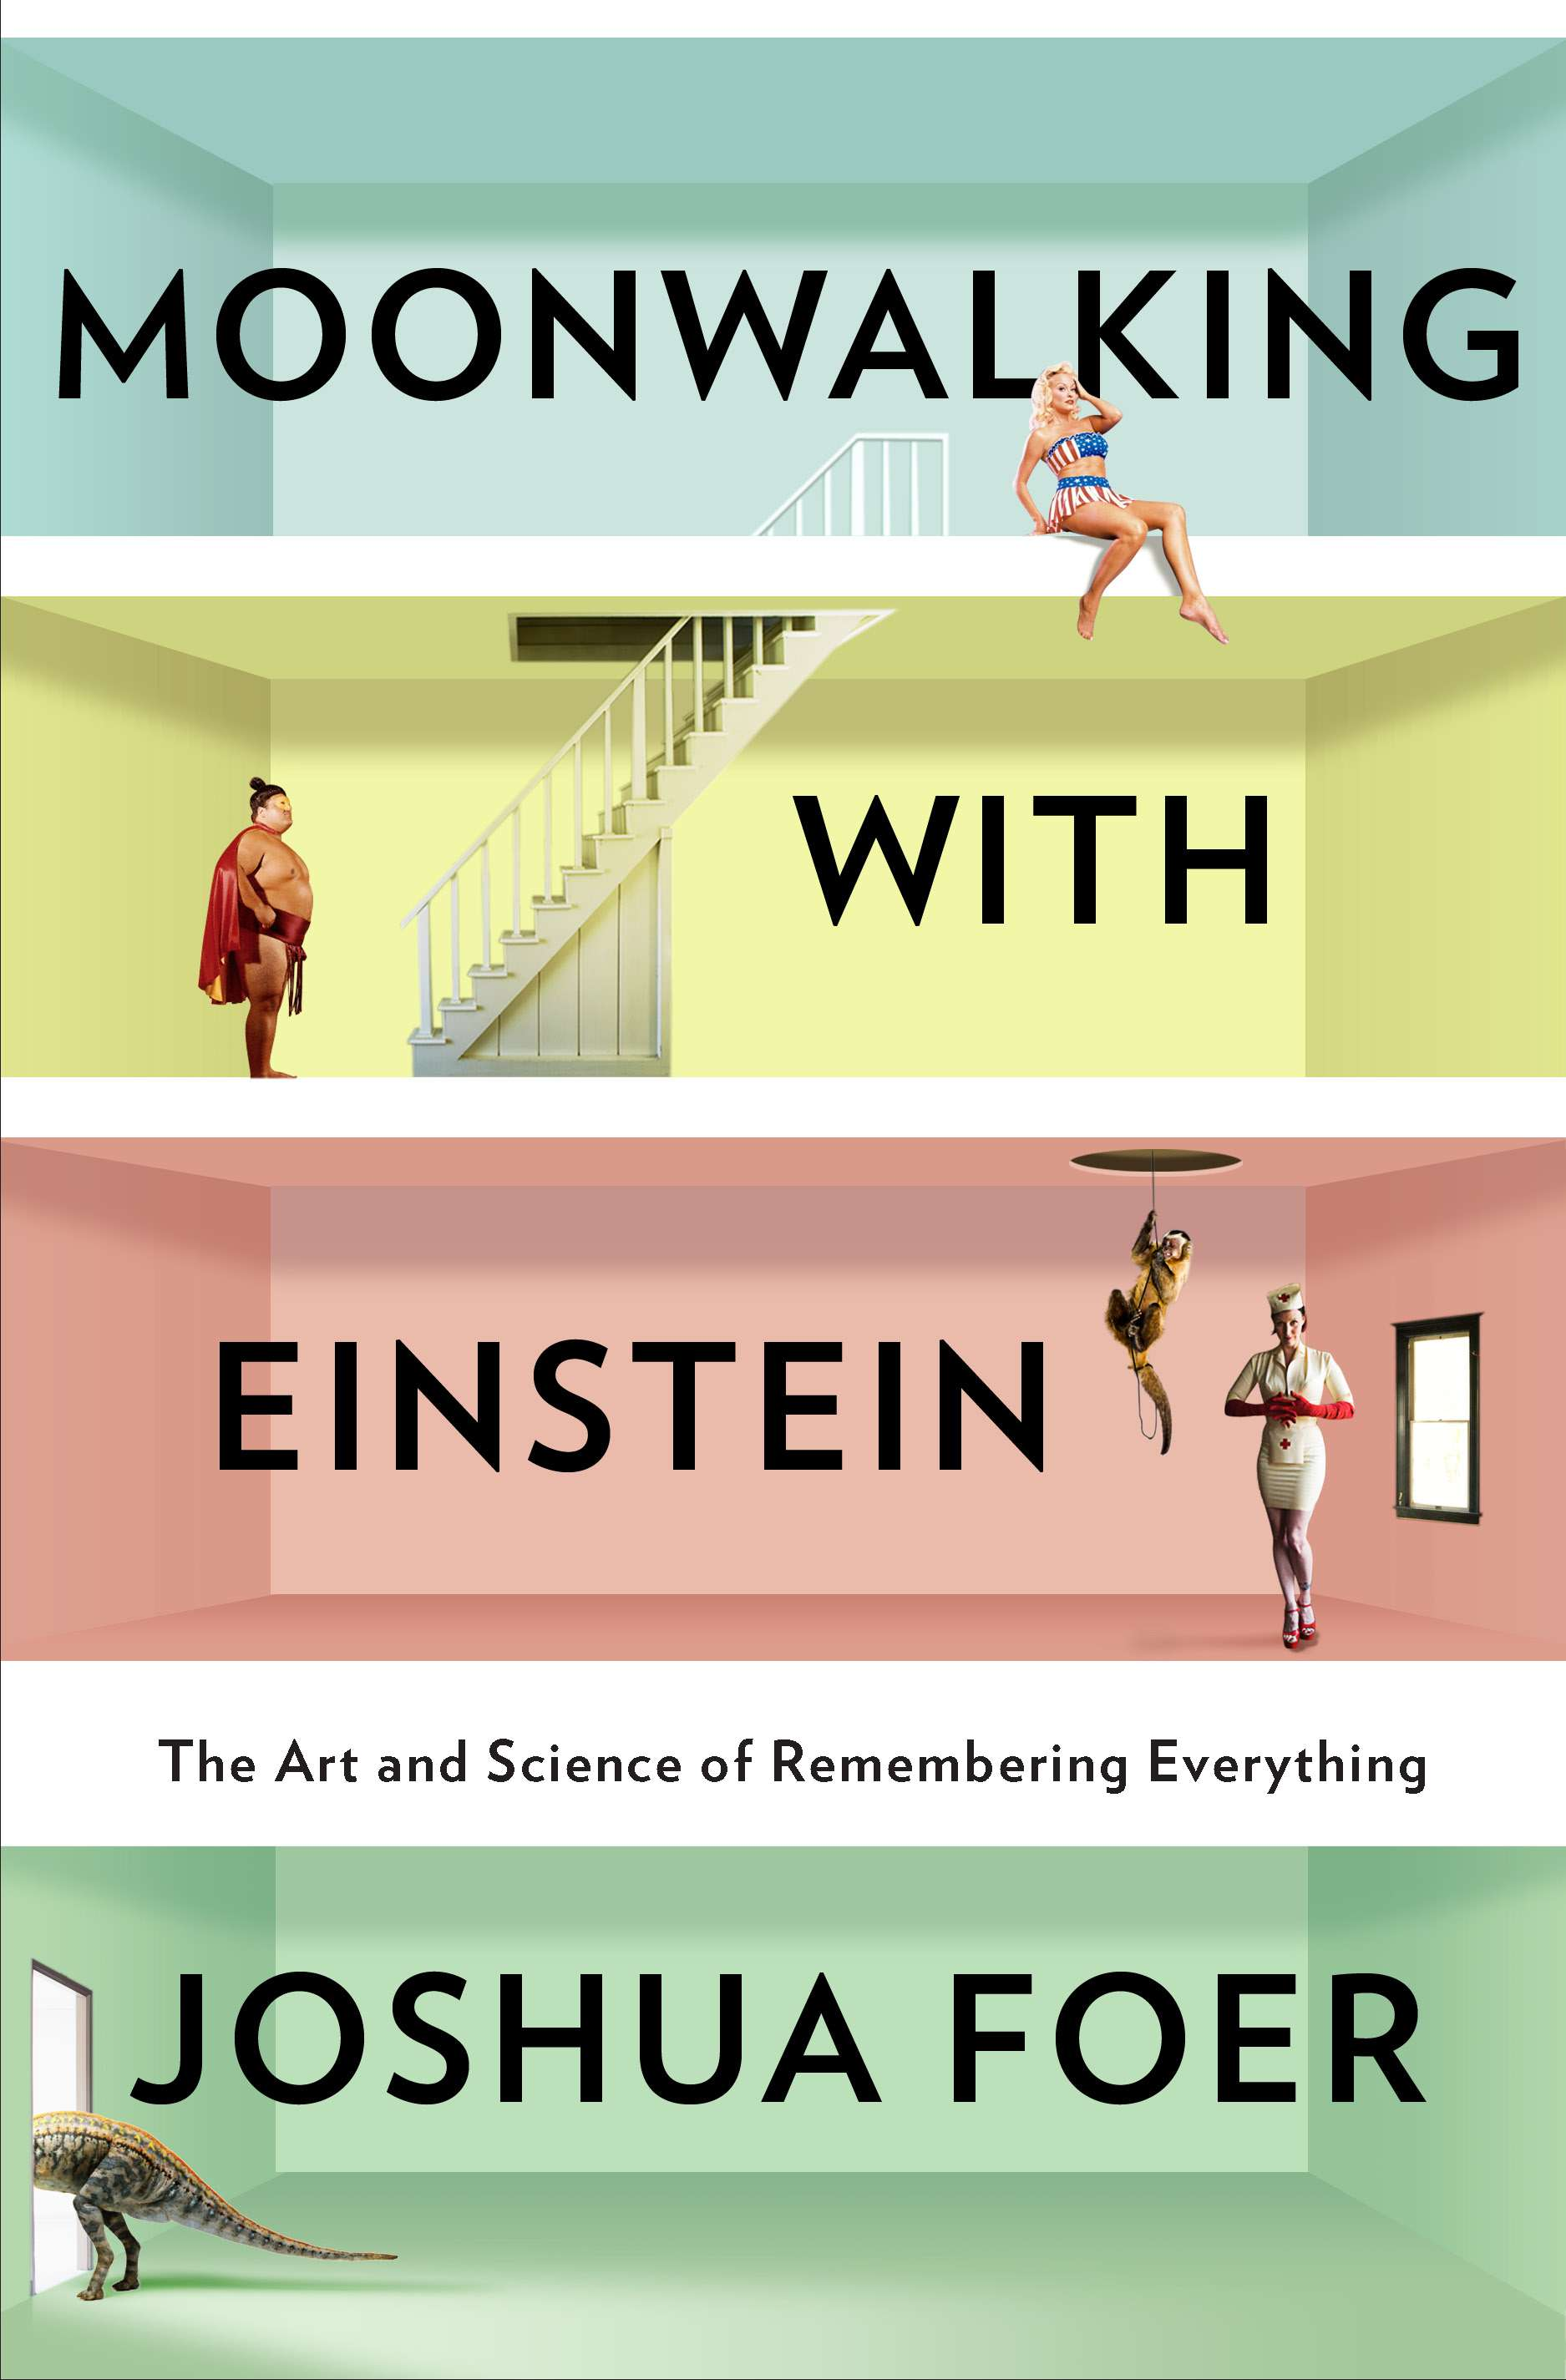 Pretty Book Cover Names ~ Moonwalking with einstein book review